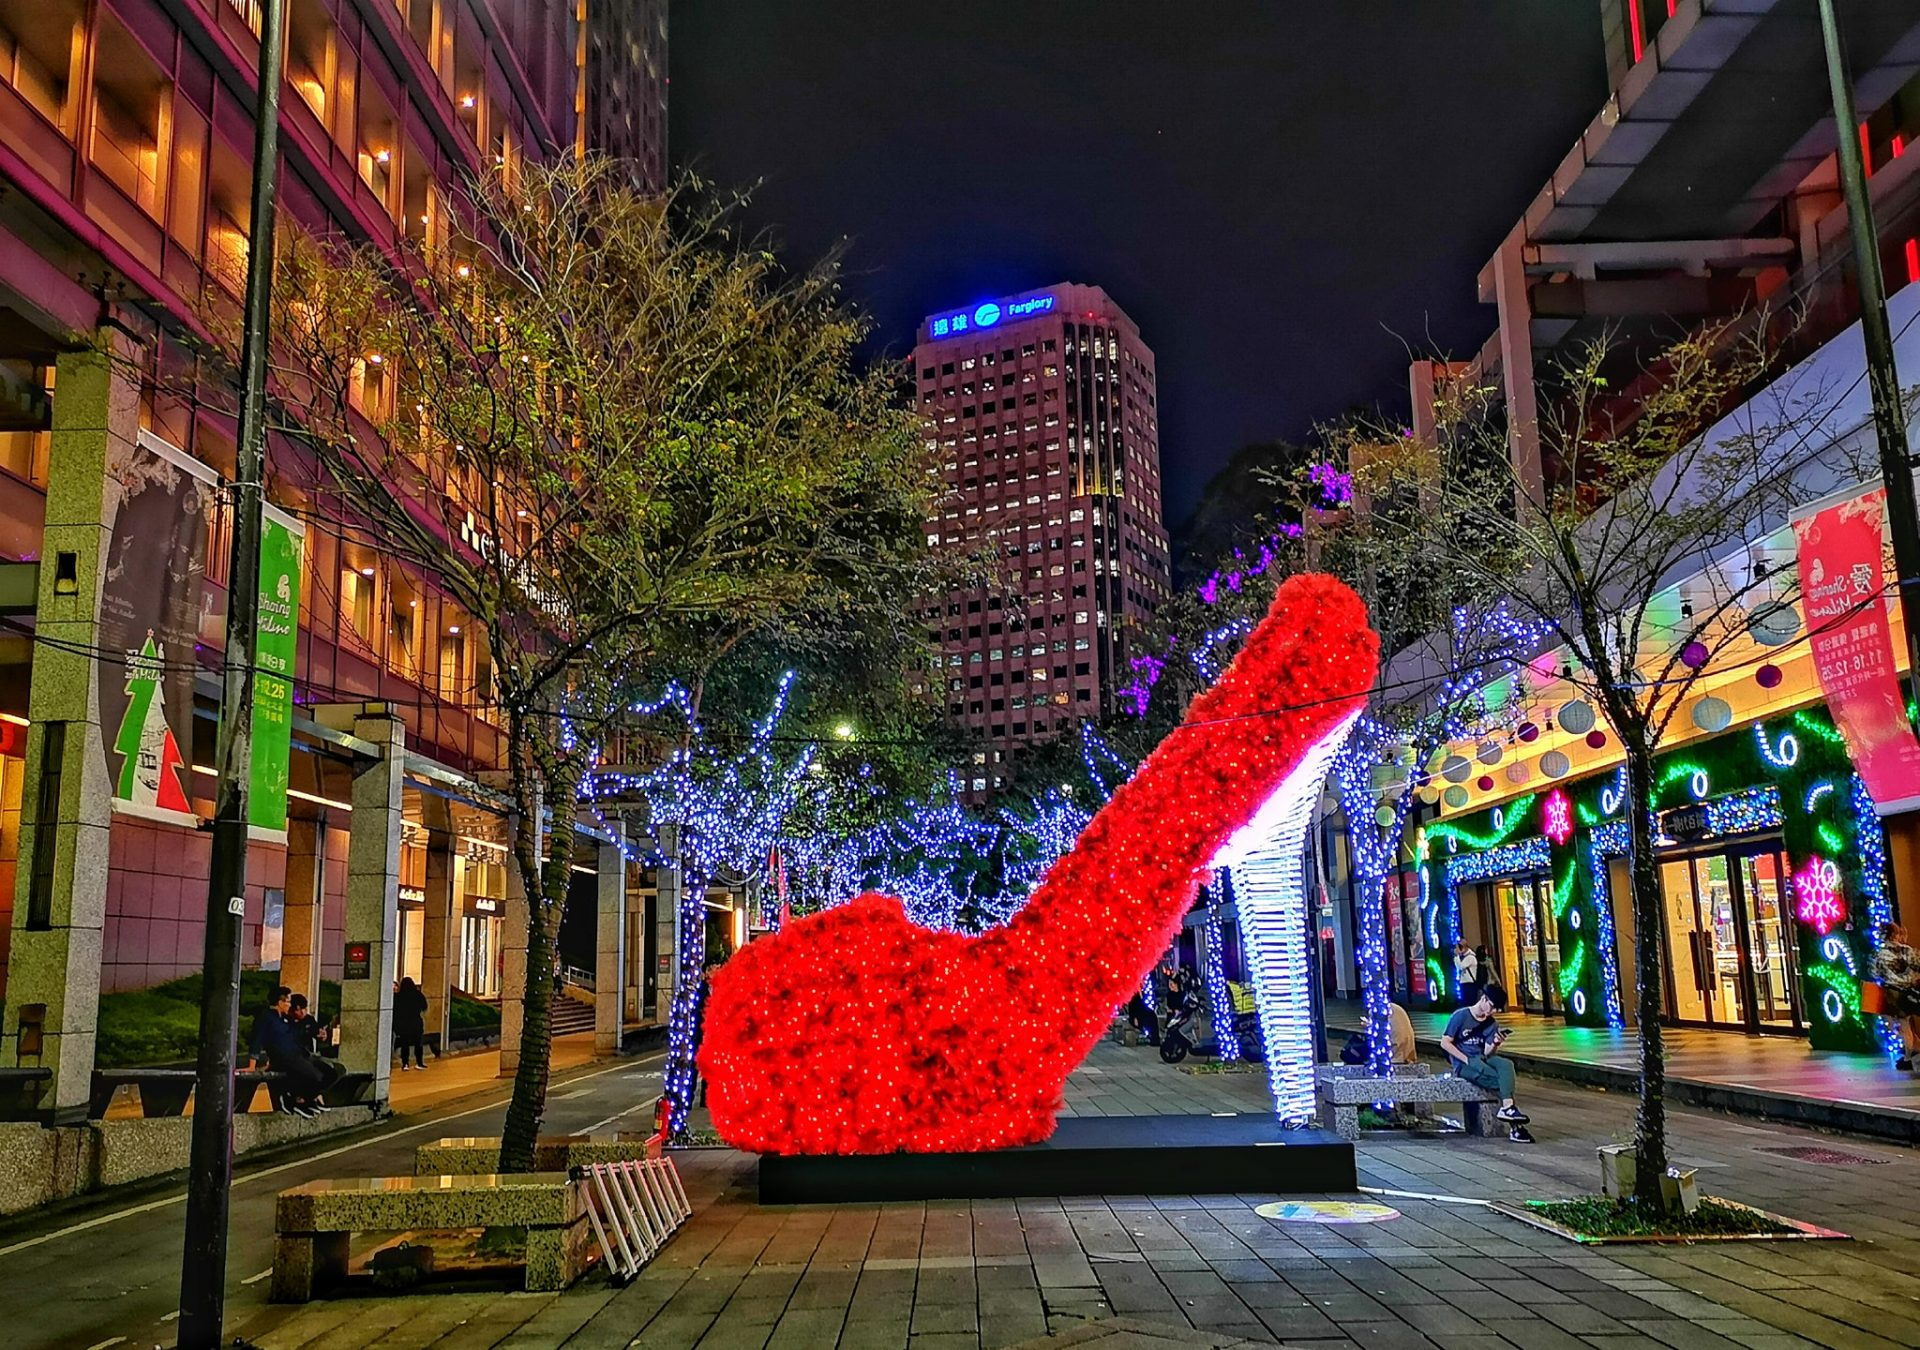 The art installations at Taipei Xinyi Shopping District . (Image: Courtesy of Xing-Mei in Keelung)